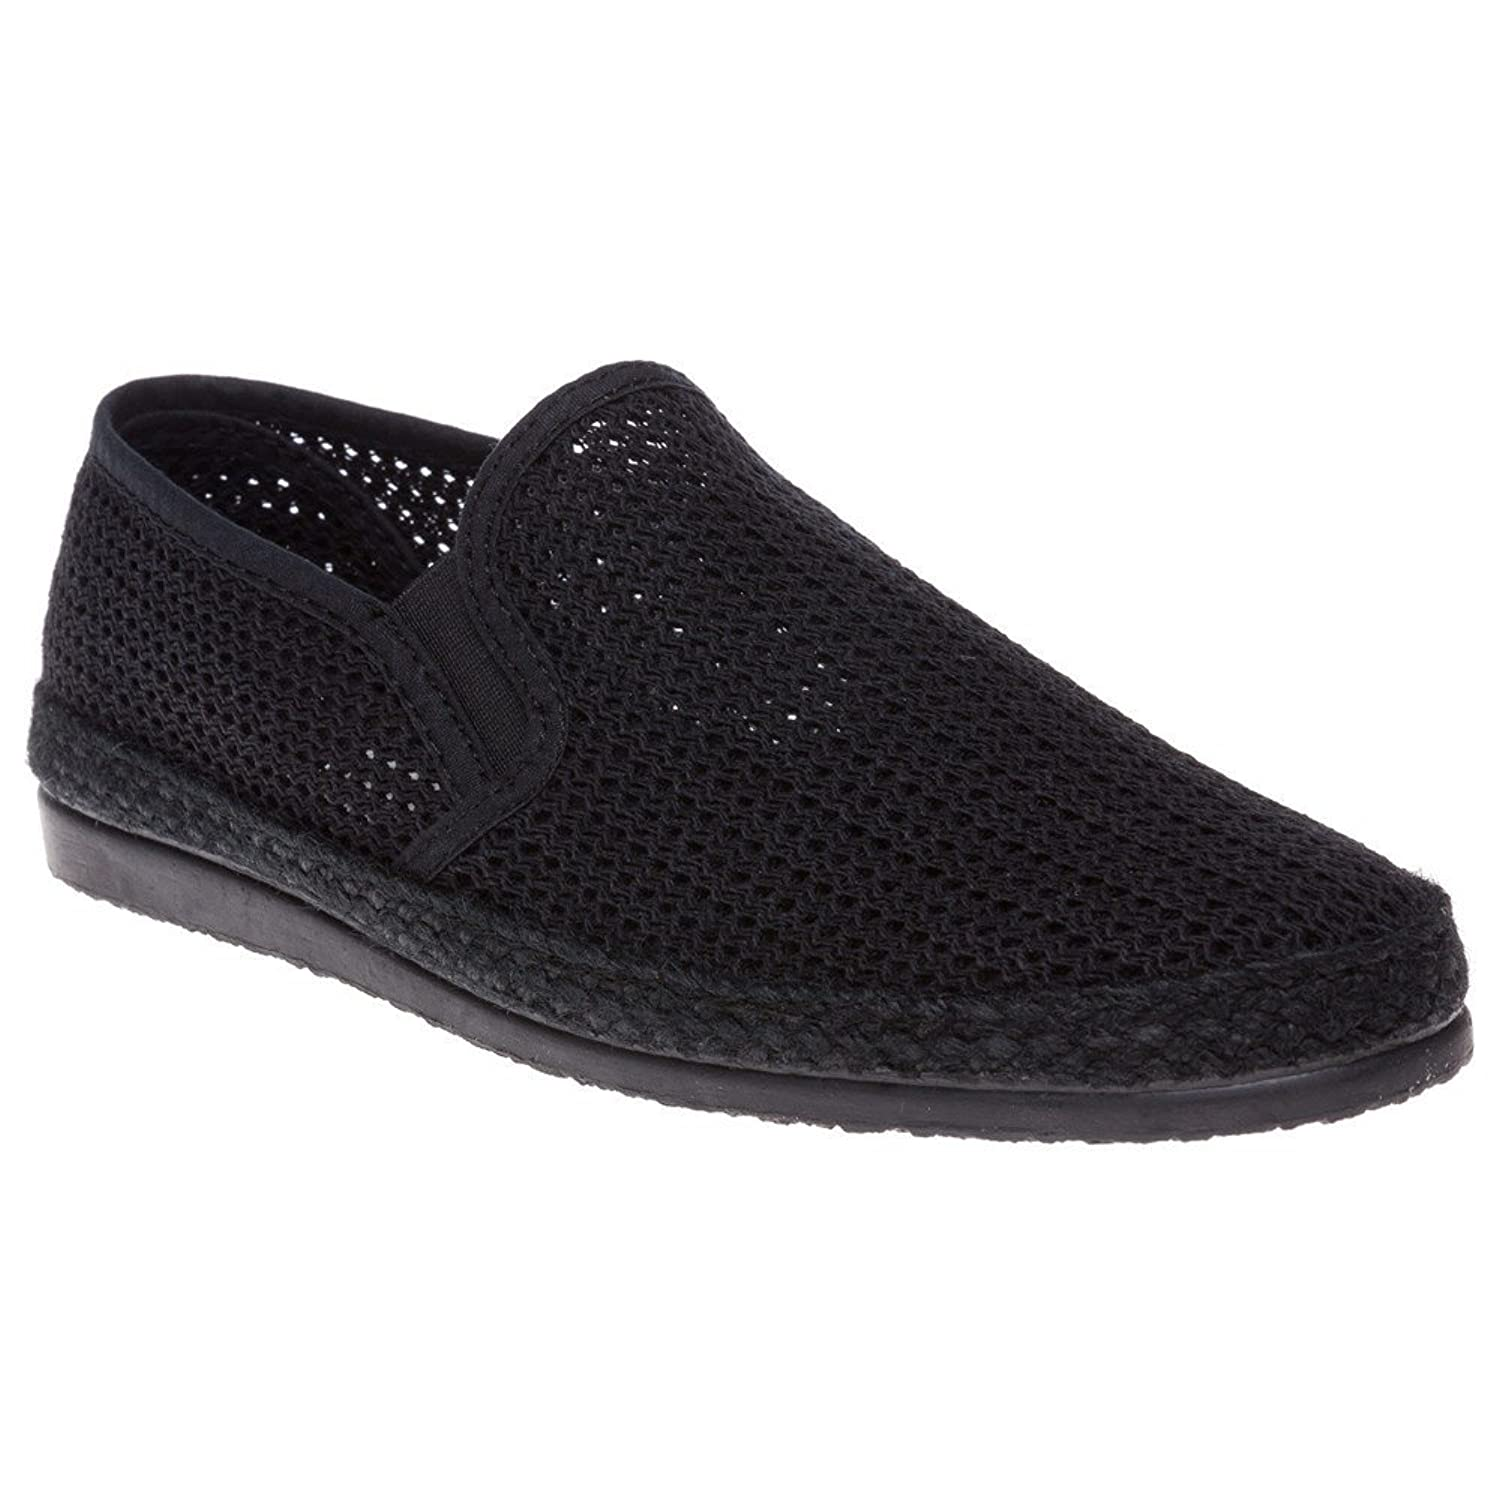 on sale Sole Buckly Homme Chaussures Noir